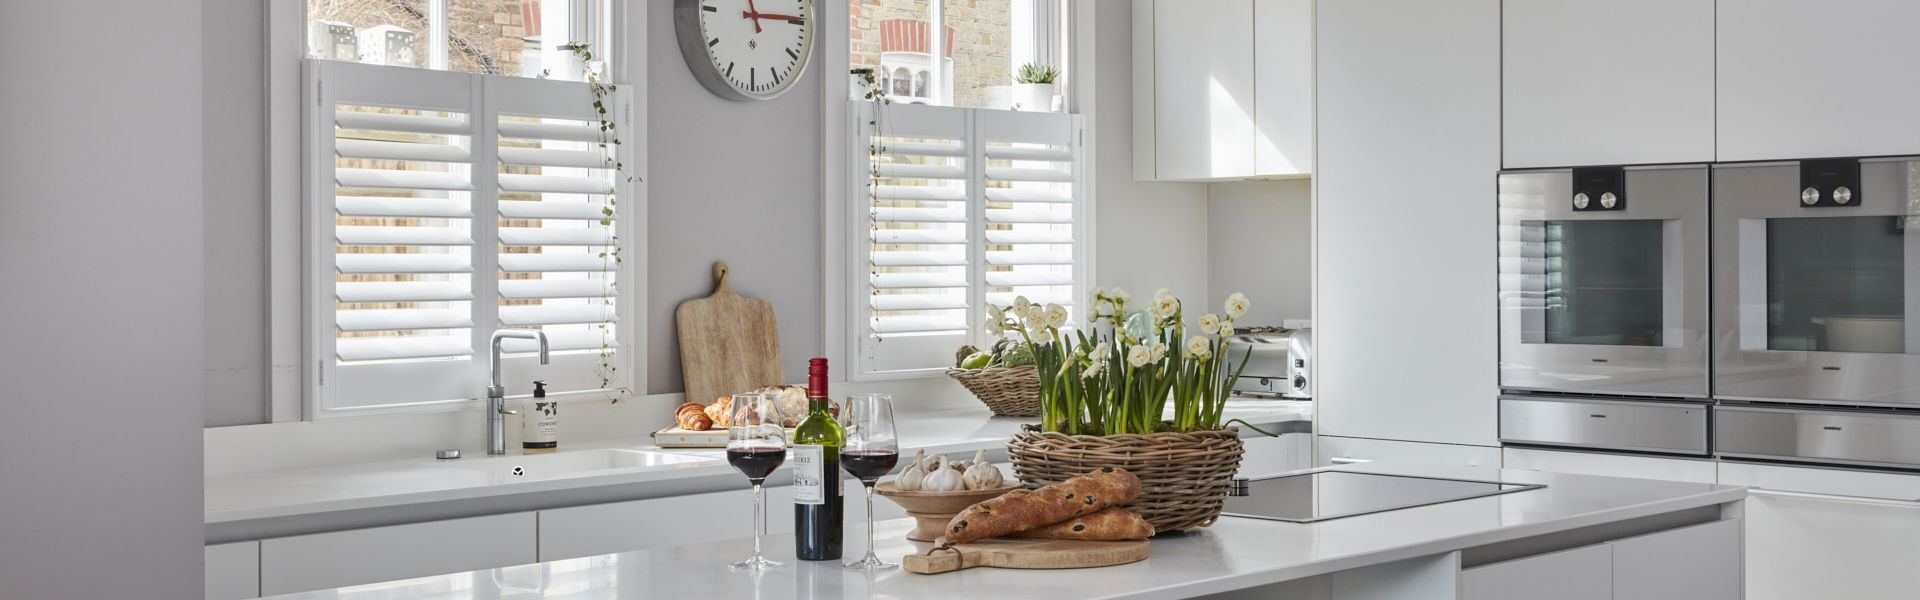 Kitchen Shutters by Plantation Shutters Ltd